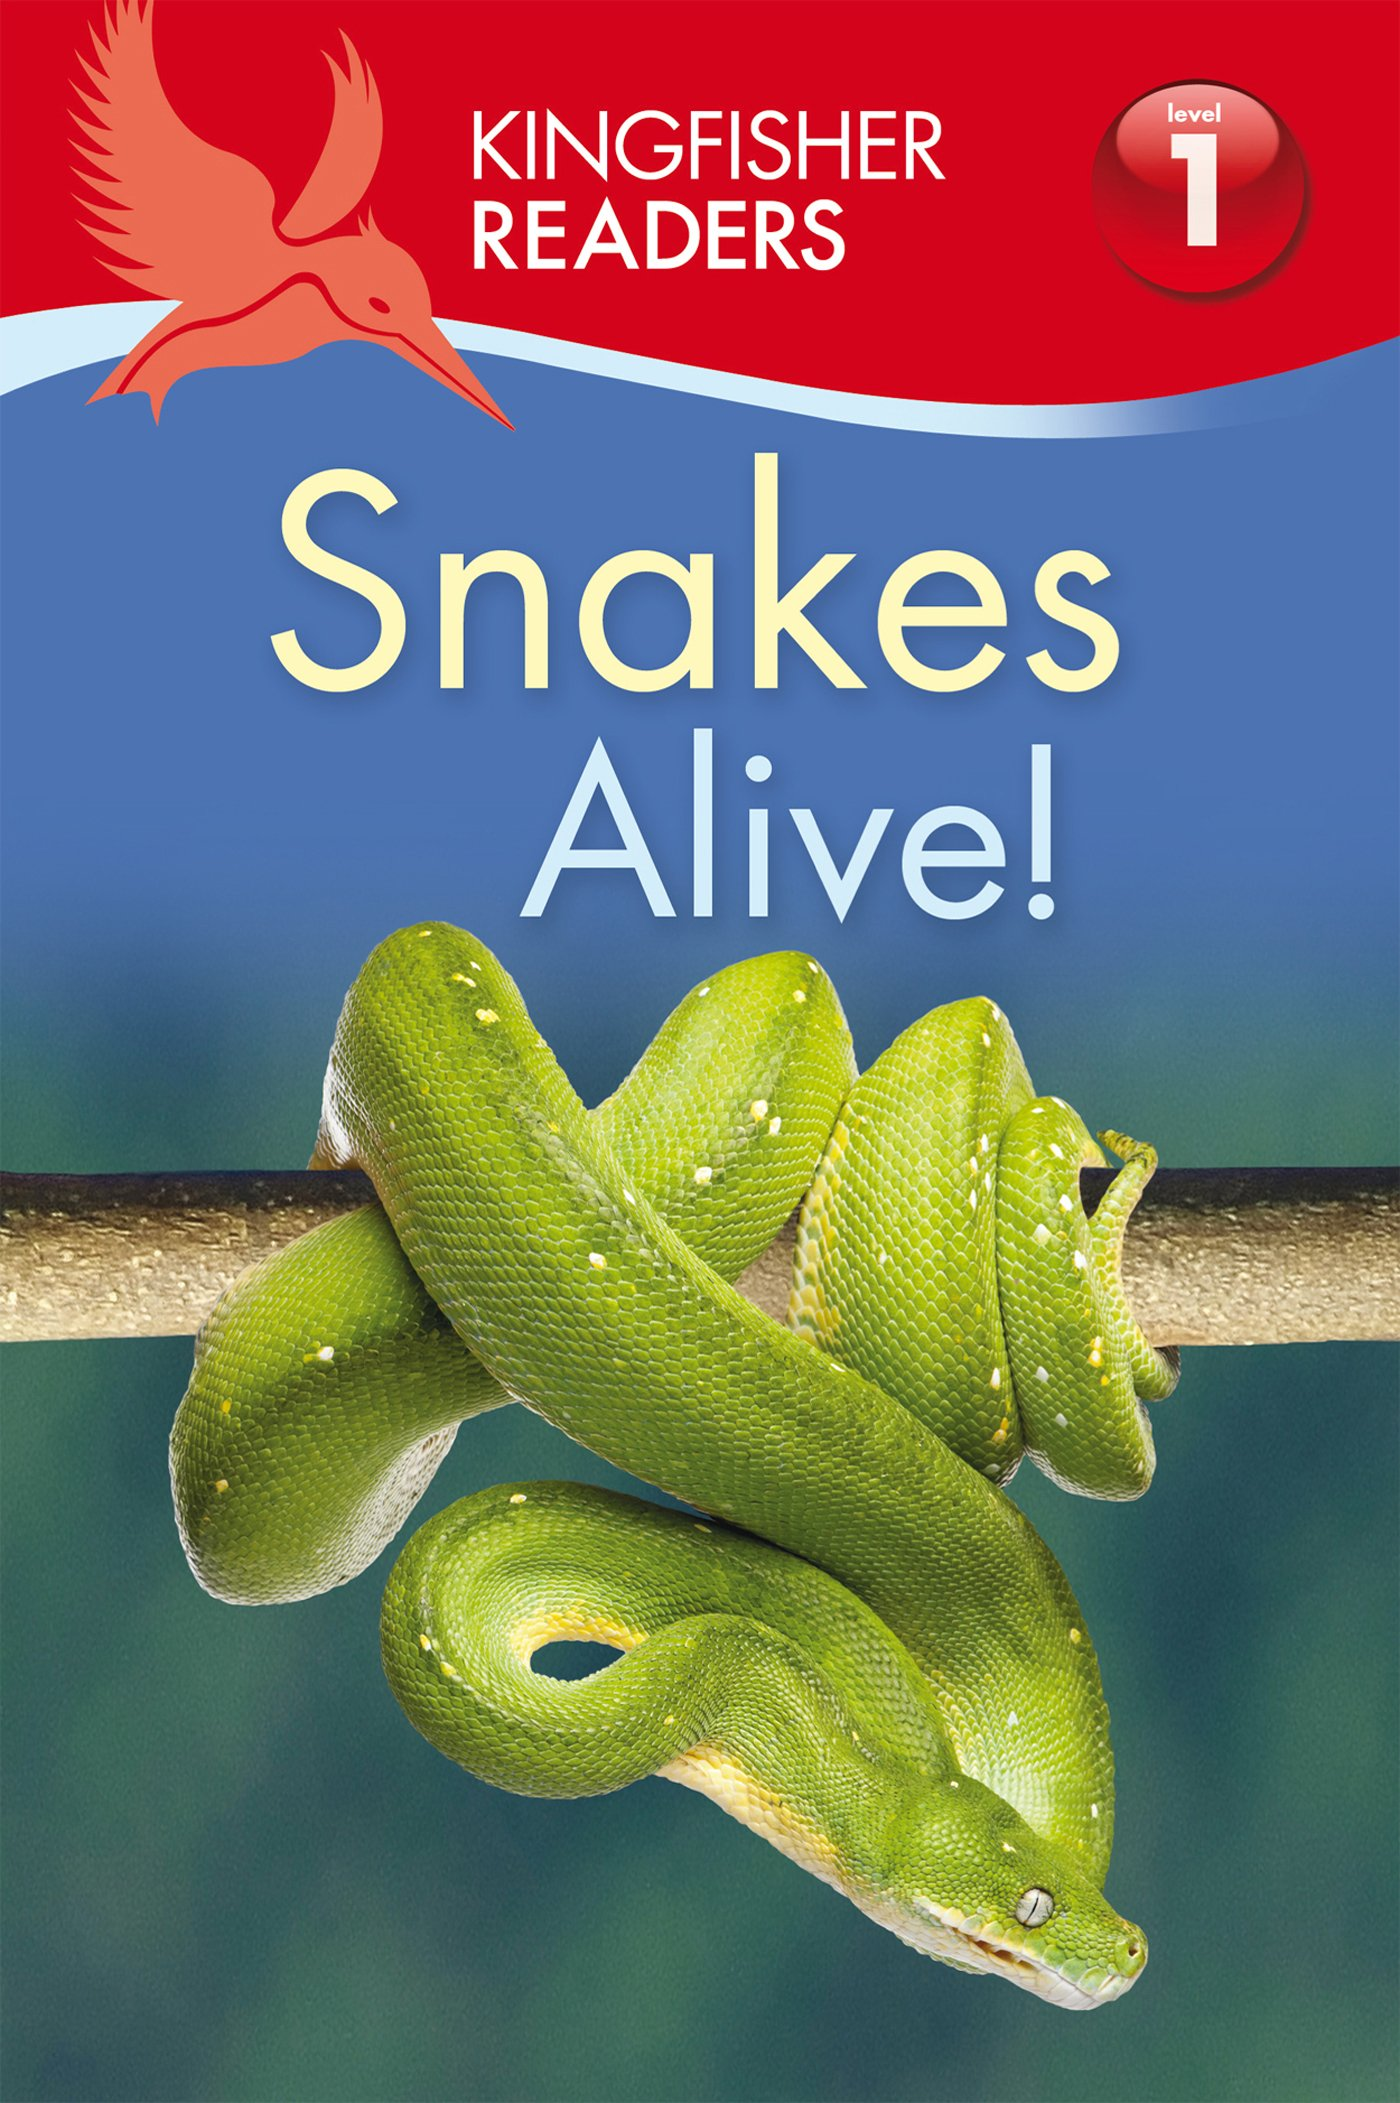 Download Kingfisher Readers L1: Snakes Alive! pdf